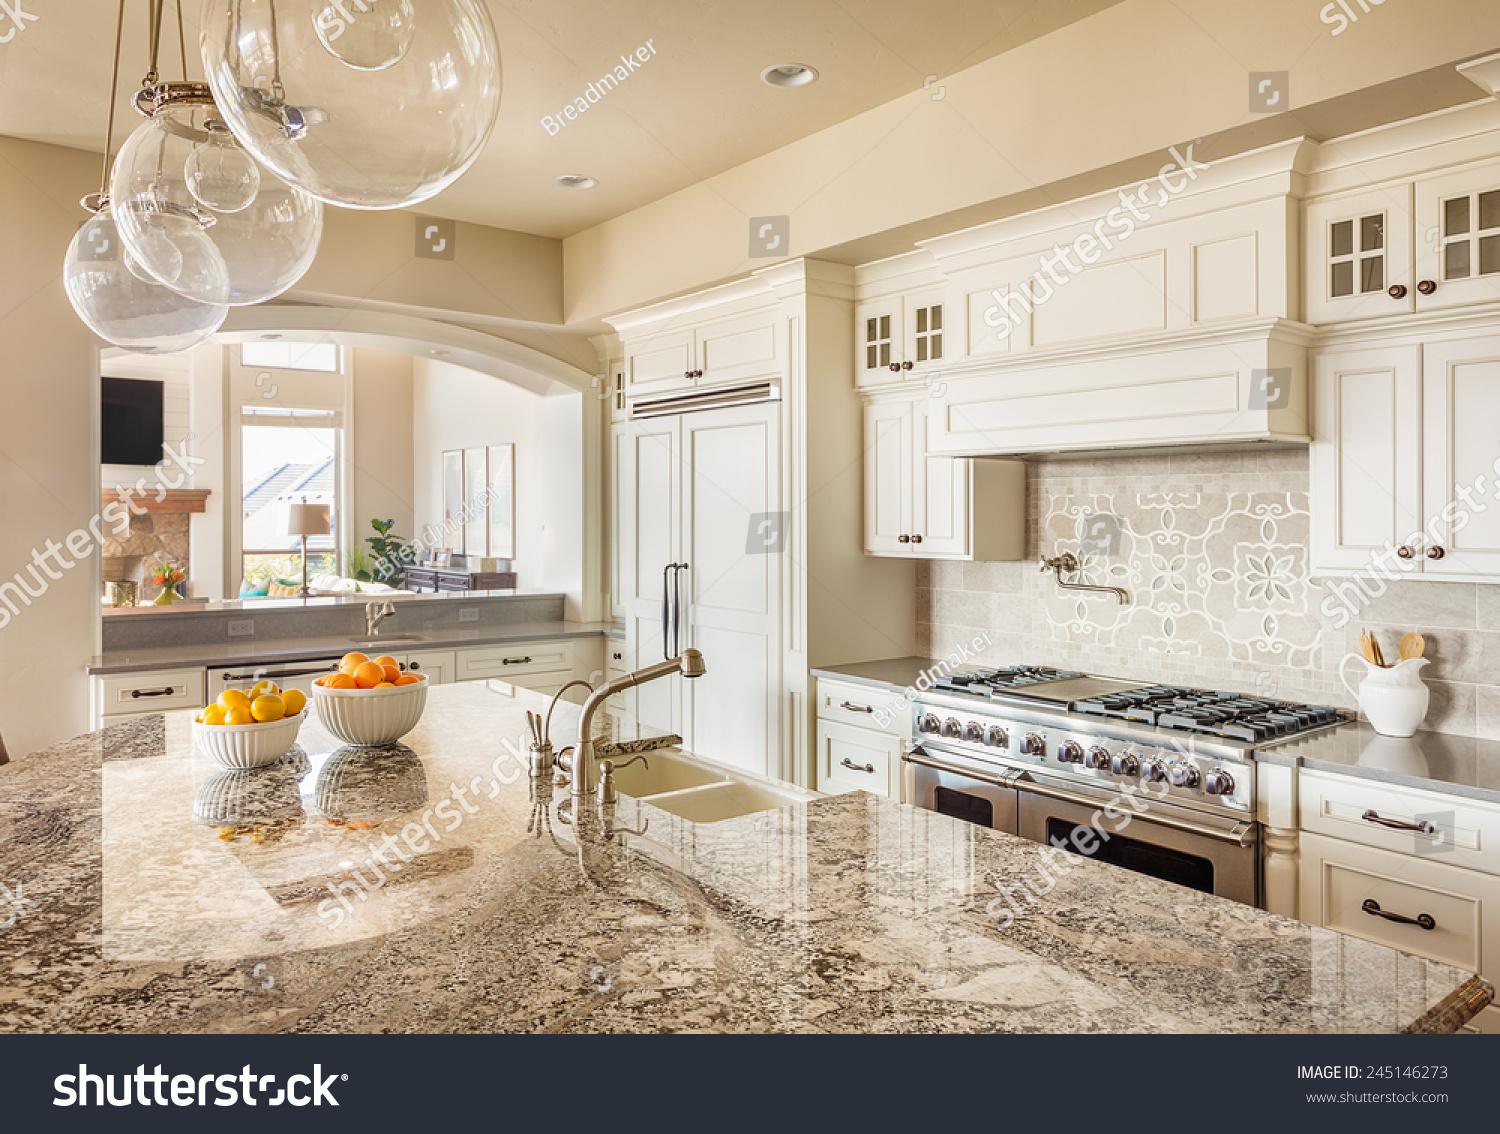 For New Kitchens Beautiful New Kitchen Interior Island Sink Stock Photo 245146273